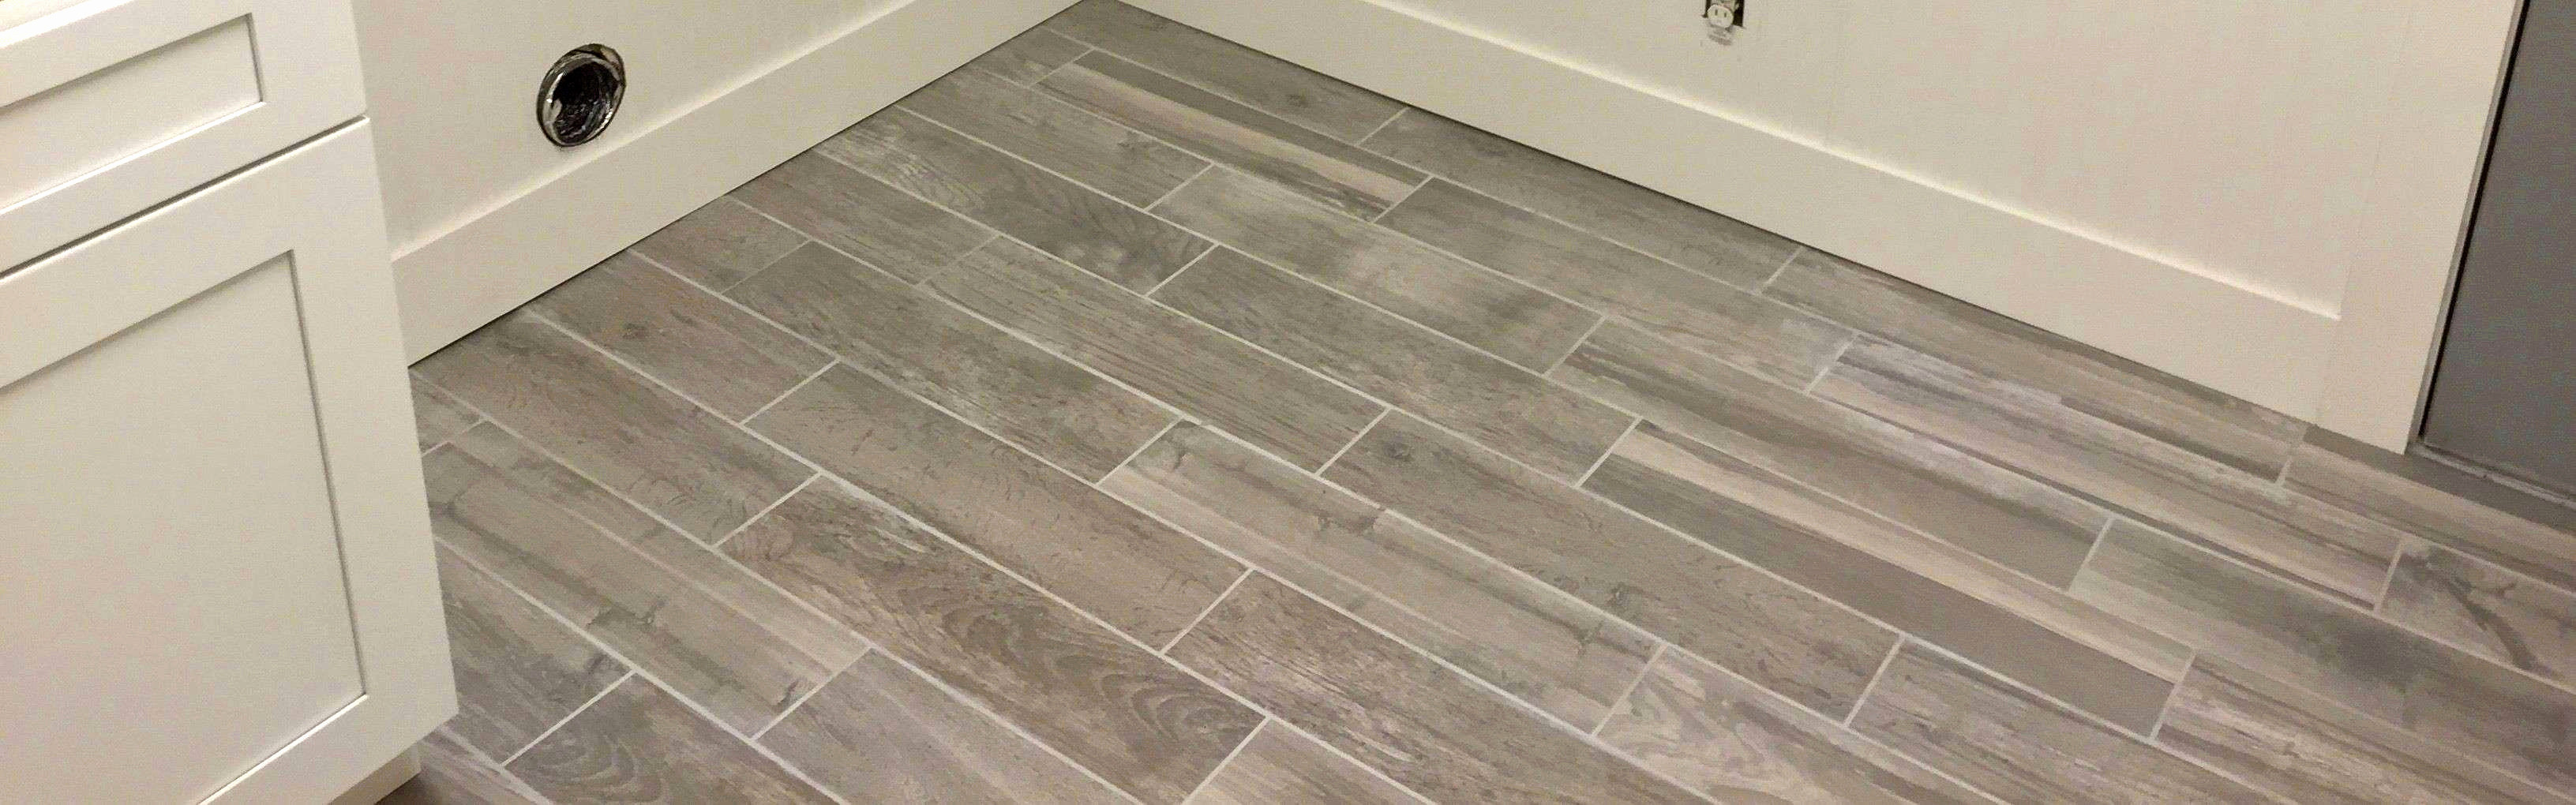 hardwood floor in bathroom of hardwood floor care floor plan ideas intended for unique bathroom tiling ideas best h sink install bathroom i 0d exciting beautiful fresh bathroom floor